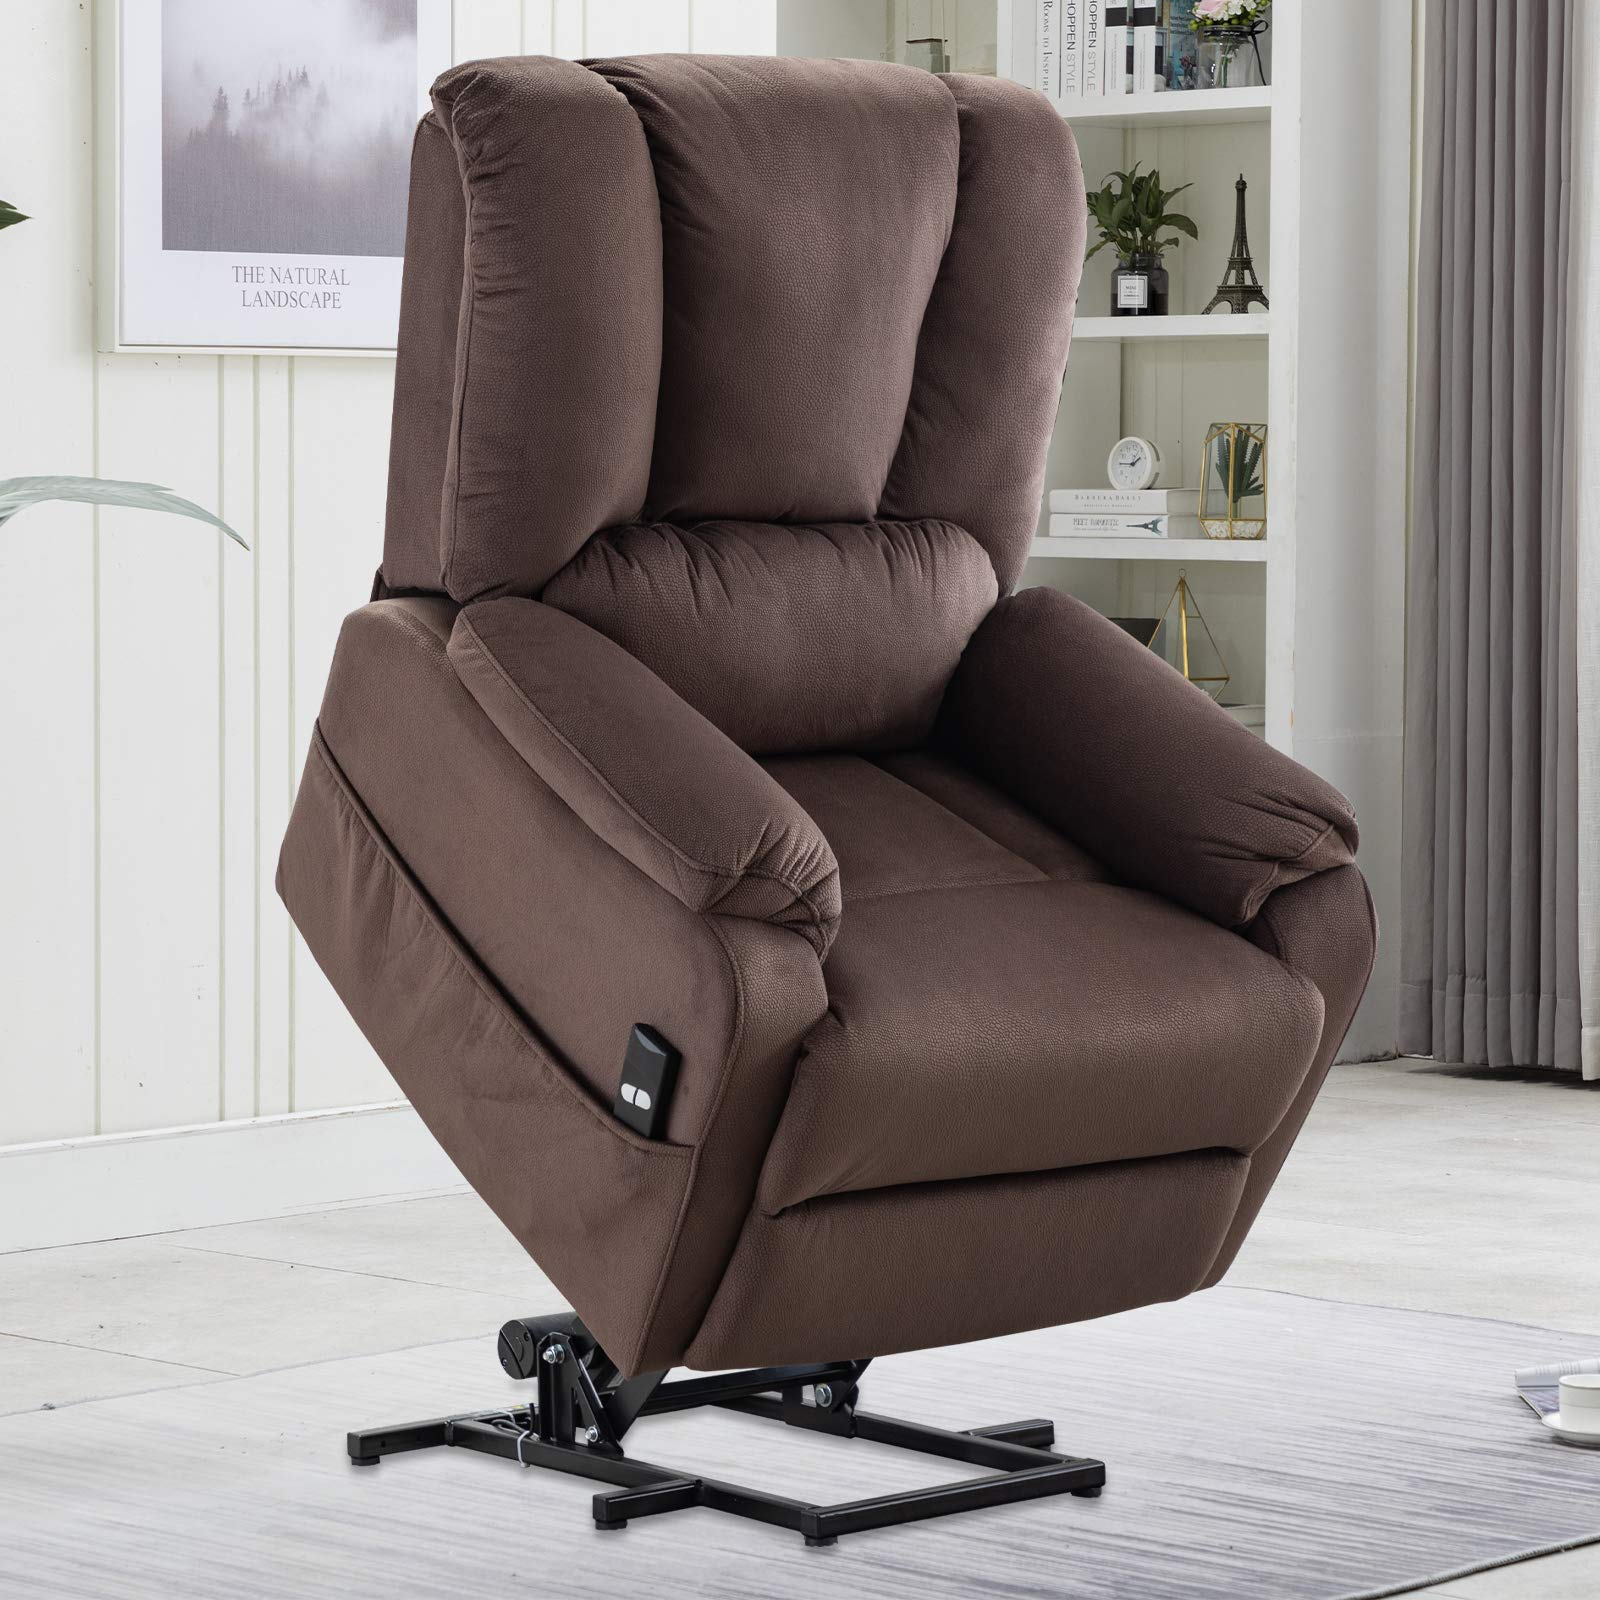 CANMOV Power Lift Recliner Chair for Elderly- Heavy Duty and Safety Motion Reclining Mechanism-Antiskid Fabric Sofa Living Room Chair, Chocolate